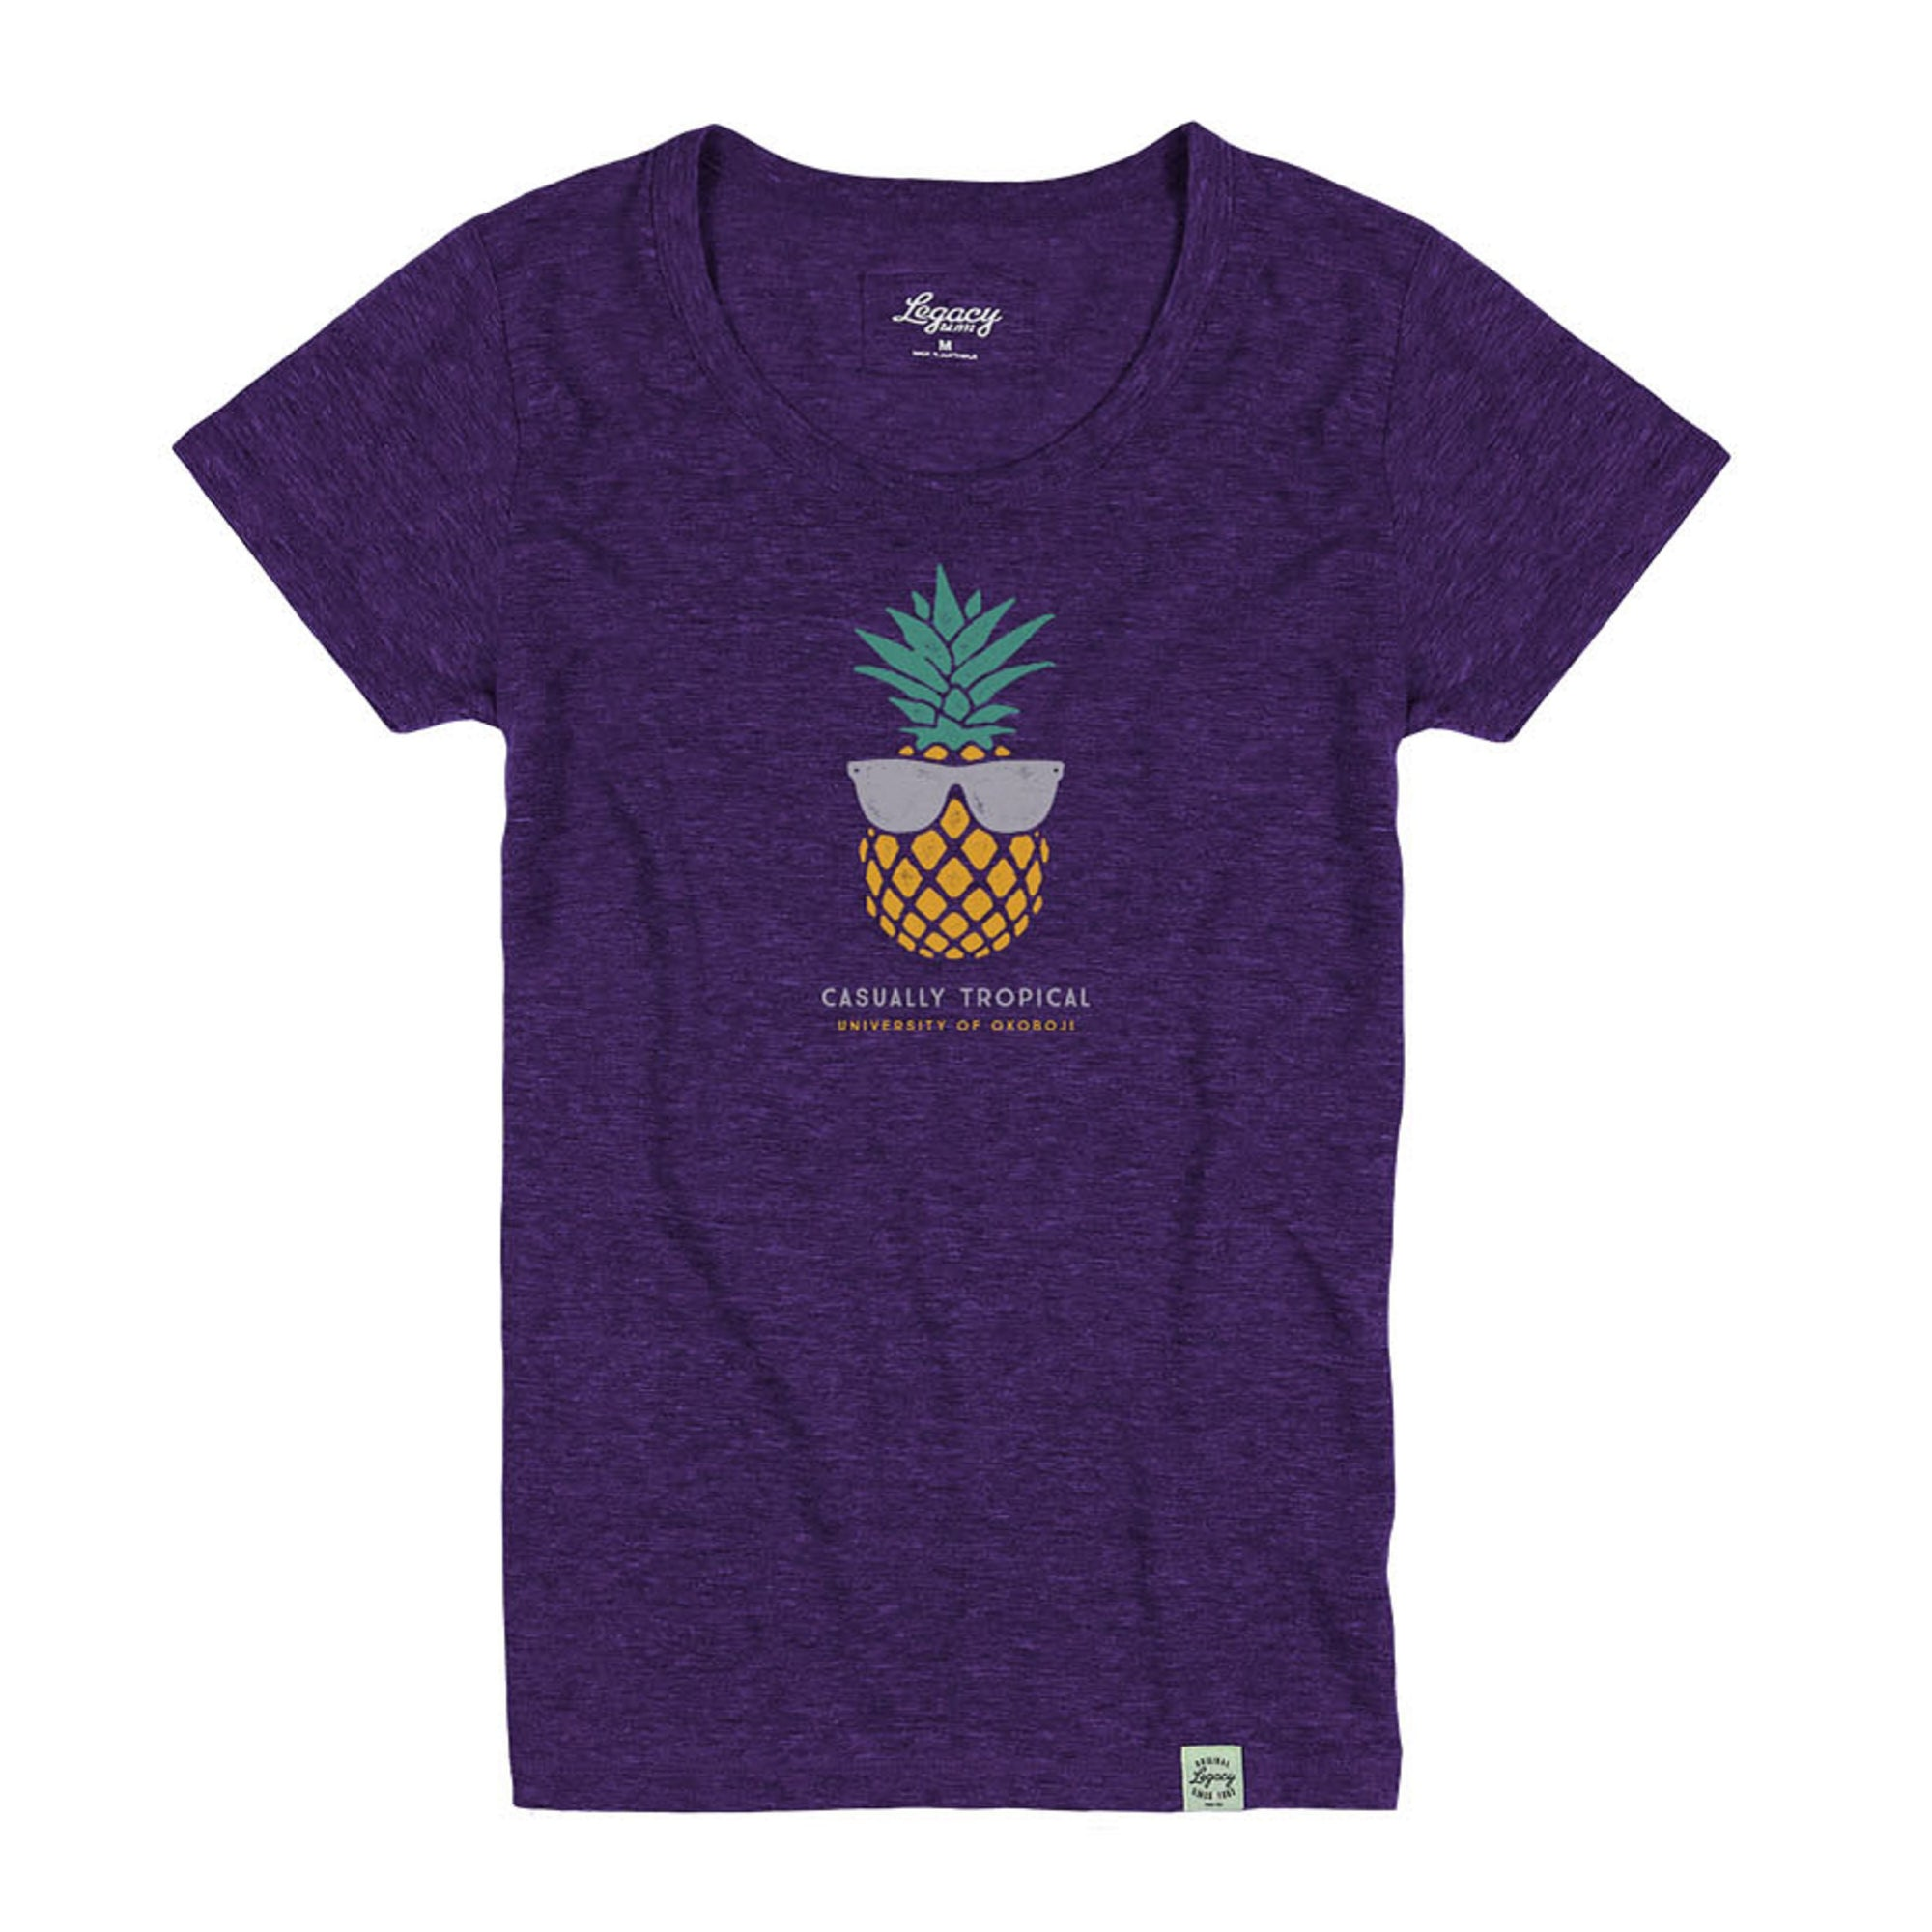 University of Okoboji Casually Tropical Tee - Purple Heather